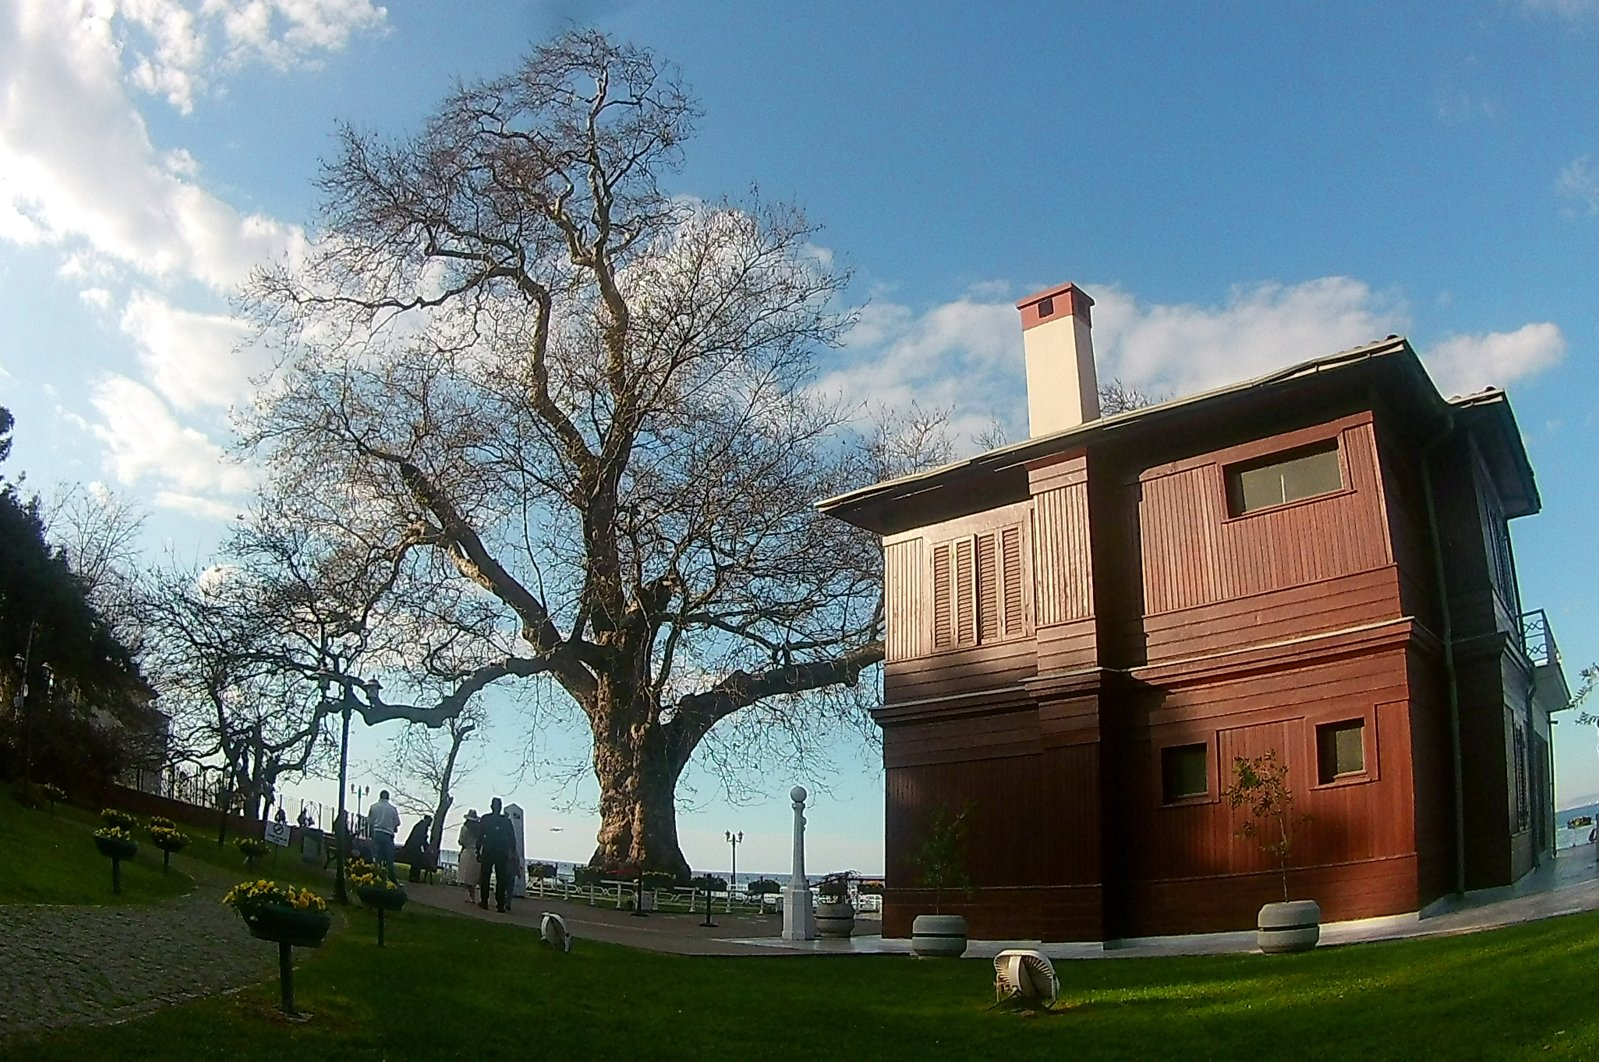 The mansion and the plane tree are seen side by side in Yalova, northwestern Turkey, Jan. 3, 2021. (AA PHOTO)